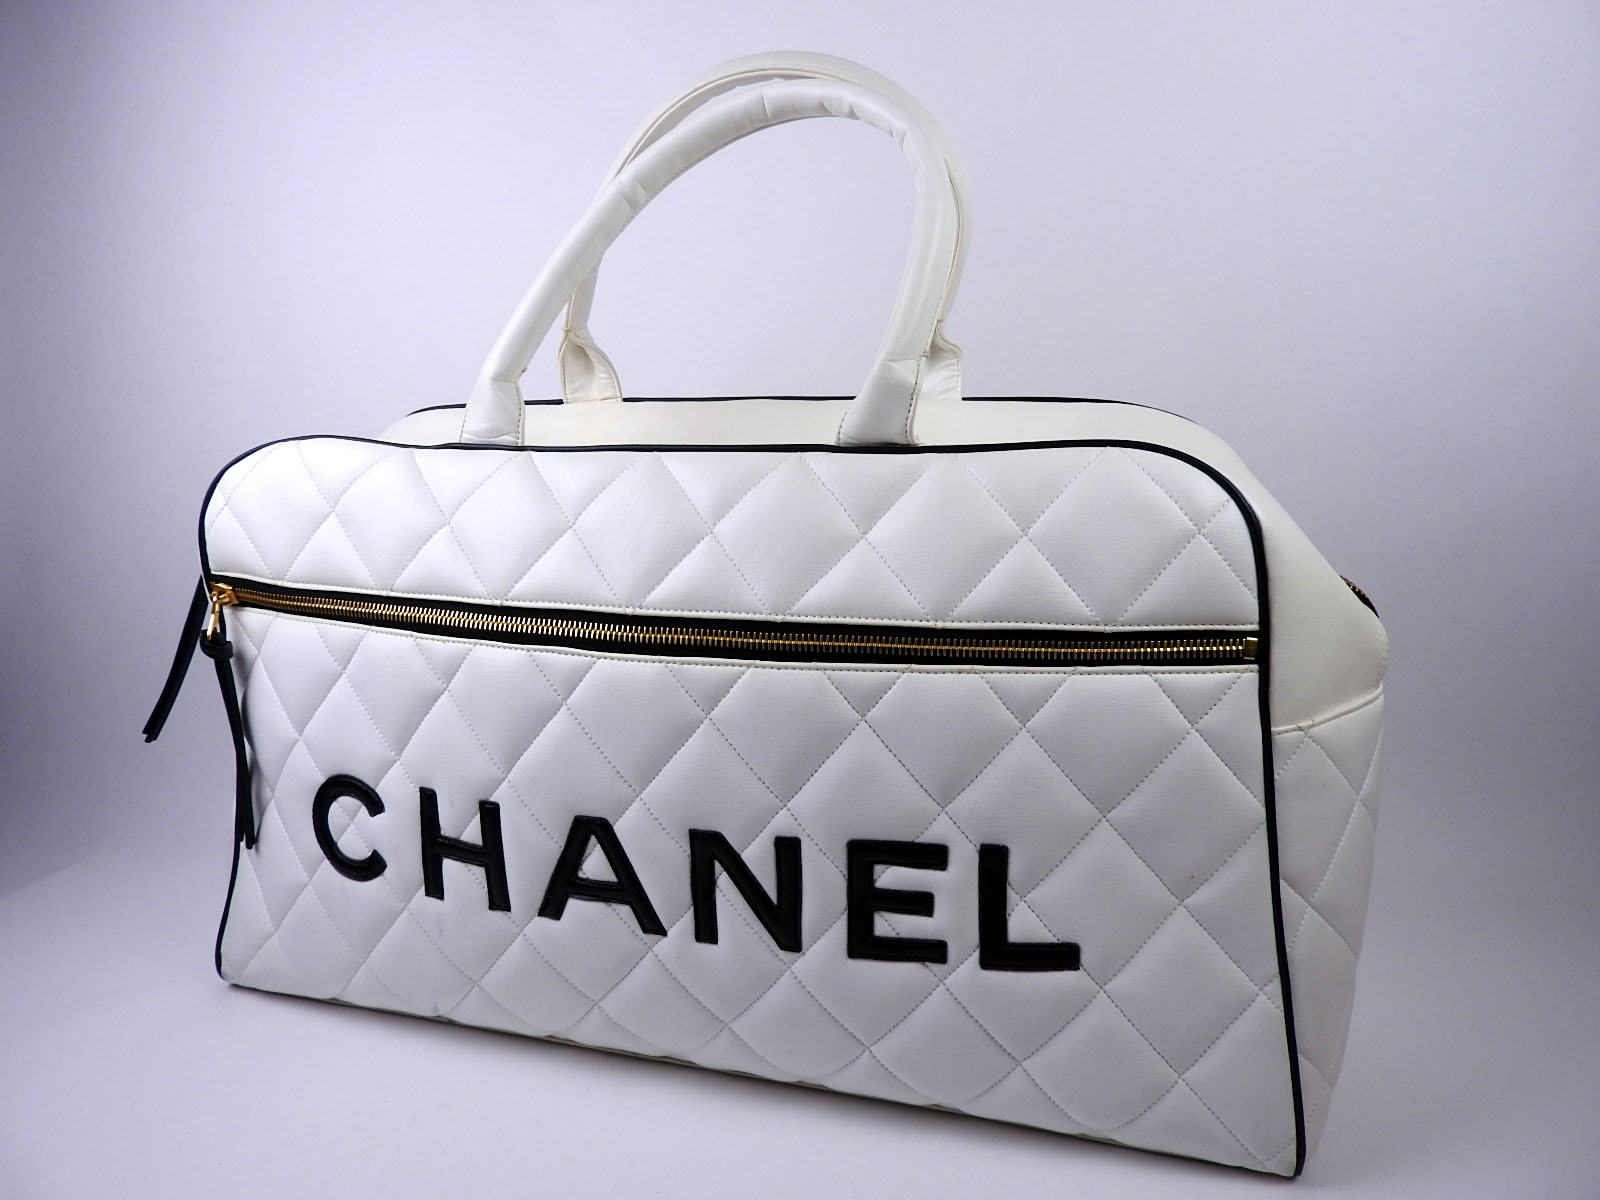 product searching.asp Brand= brandname=Chanel